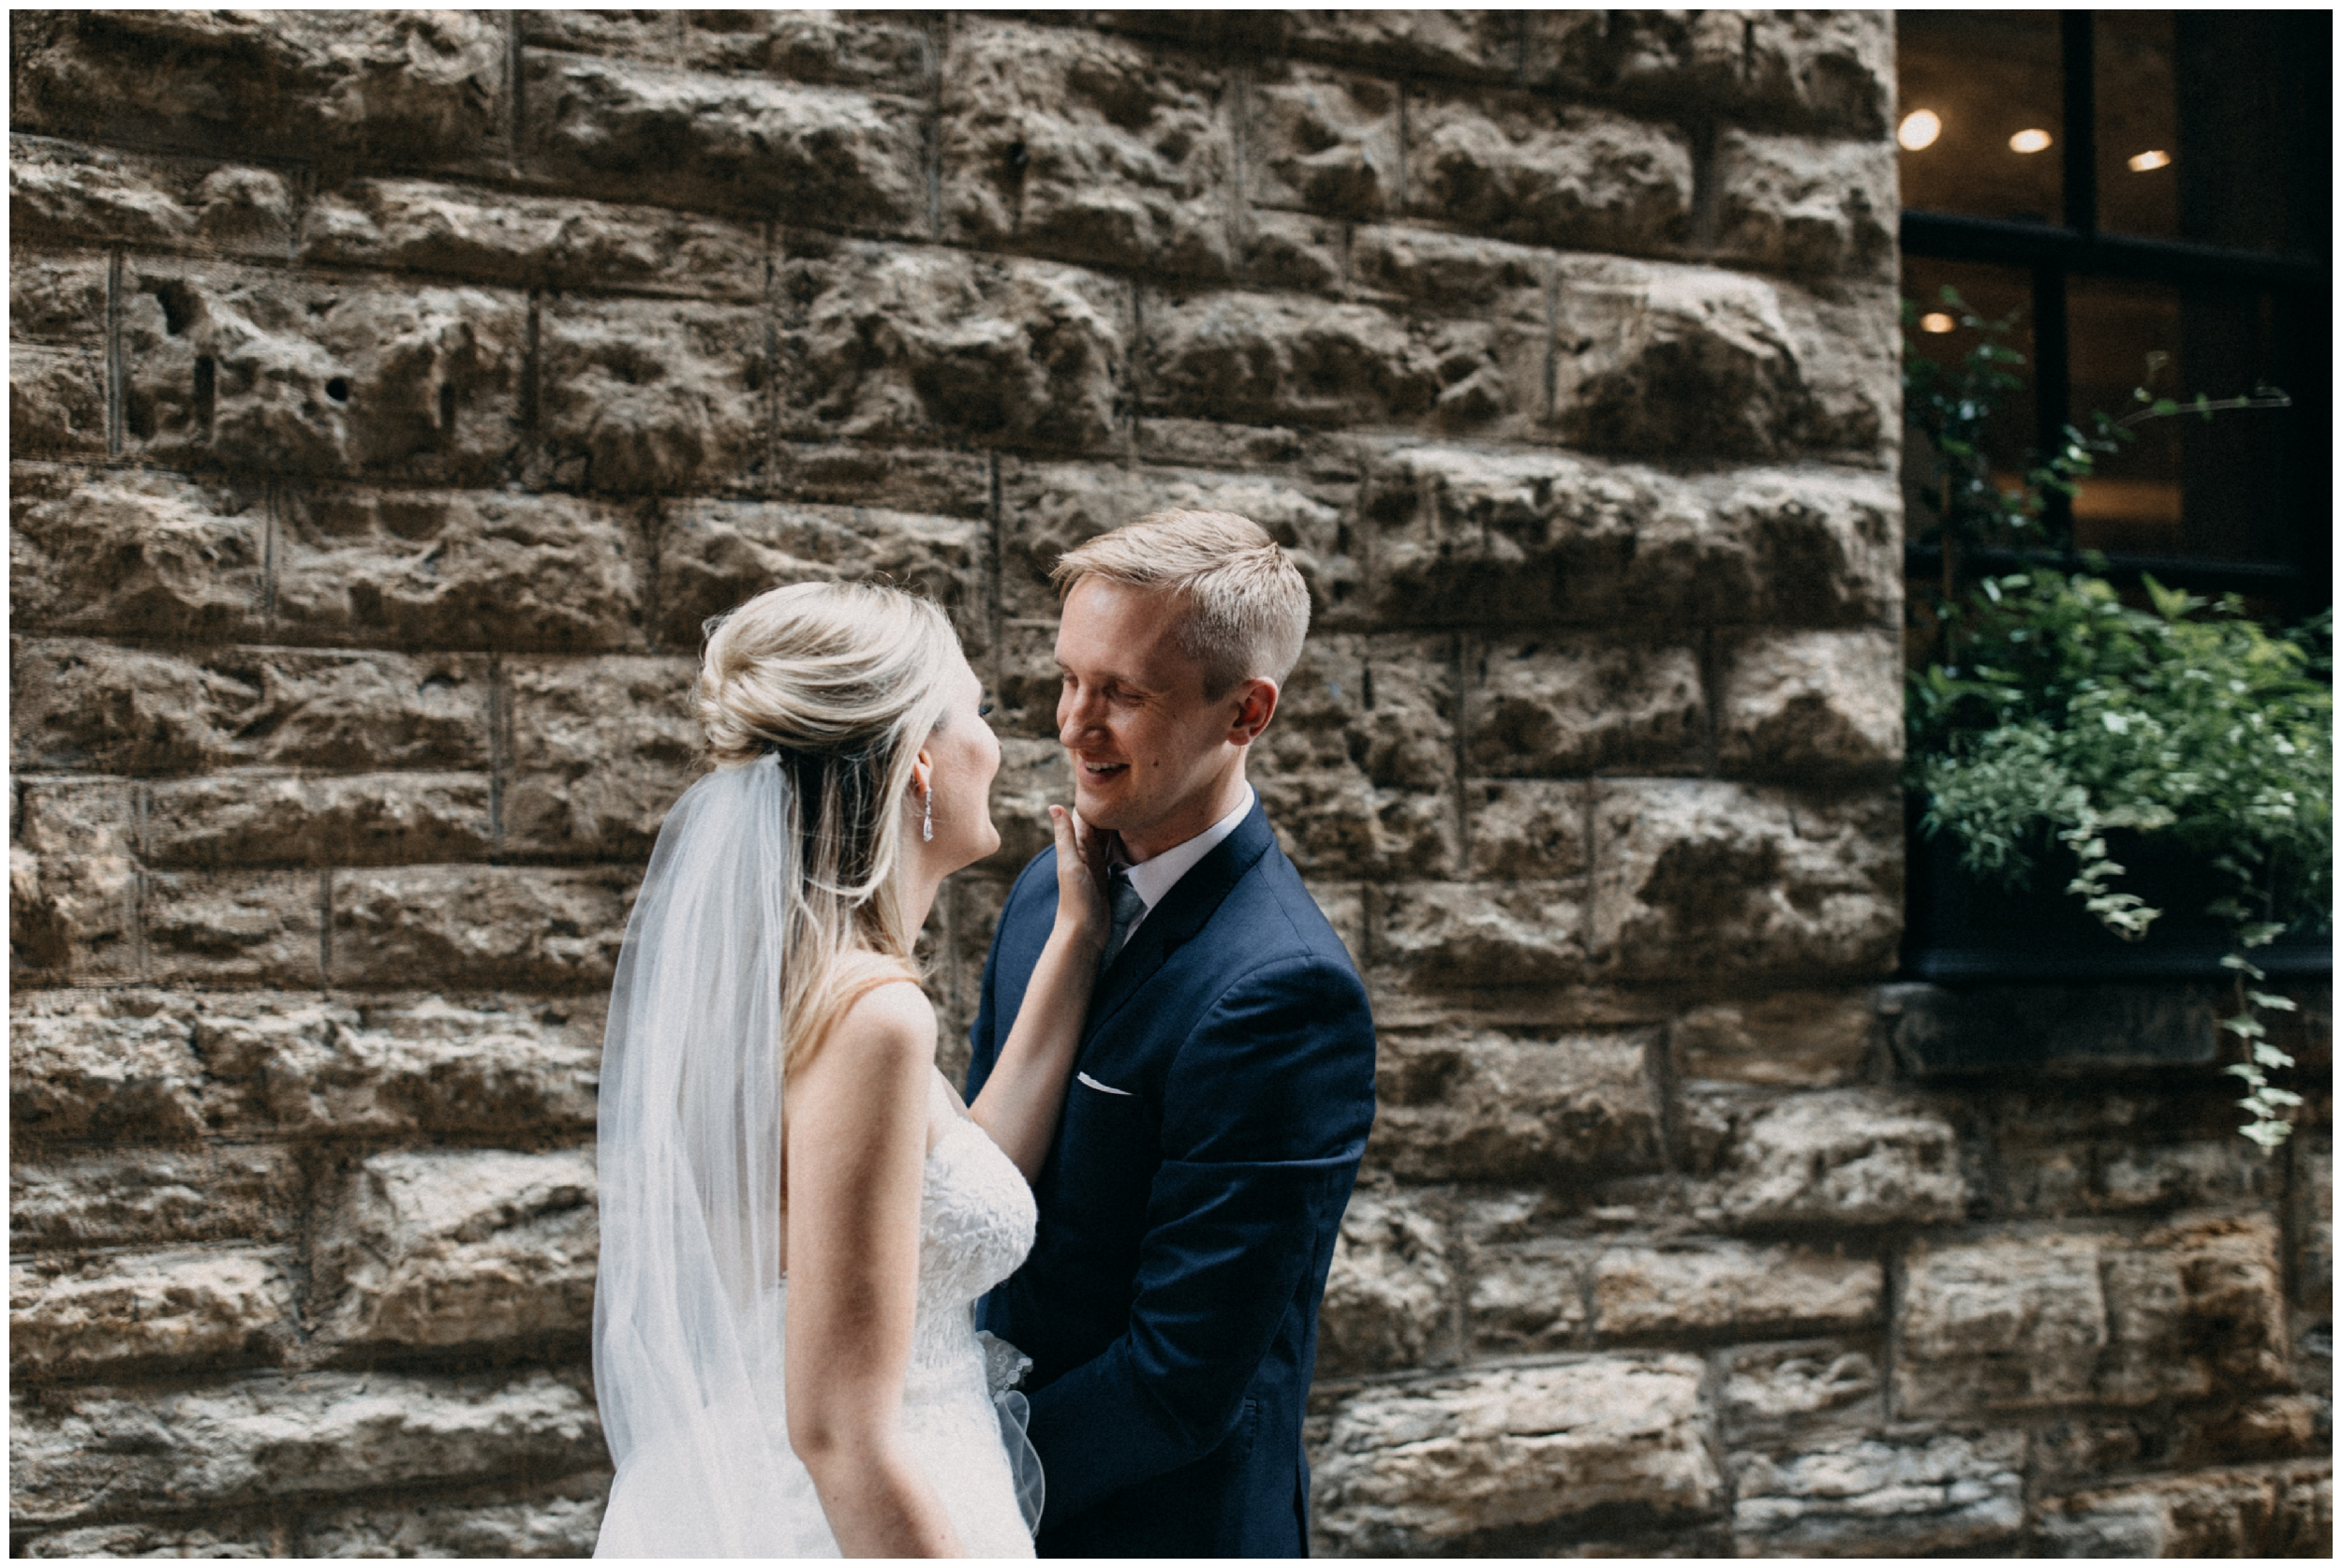 Intimate alleyway first look with bride and groom in Minneapolis